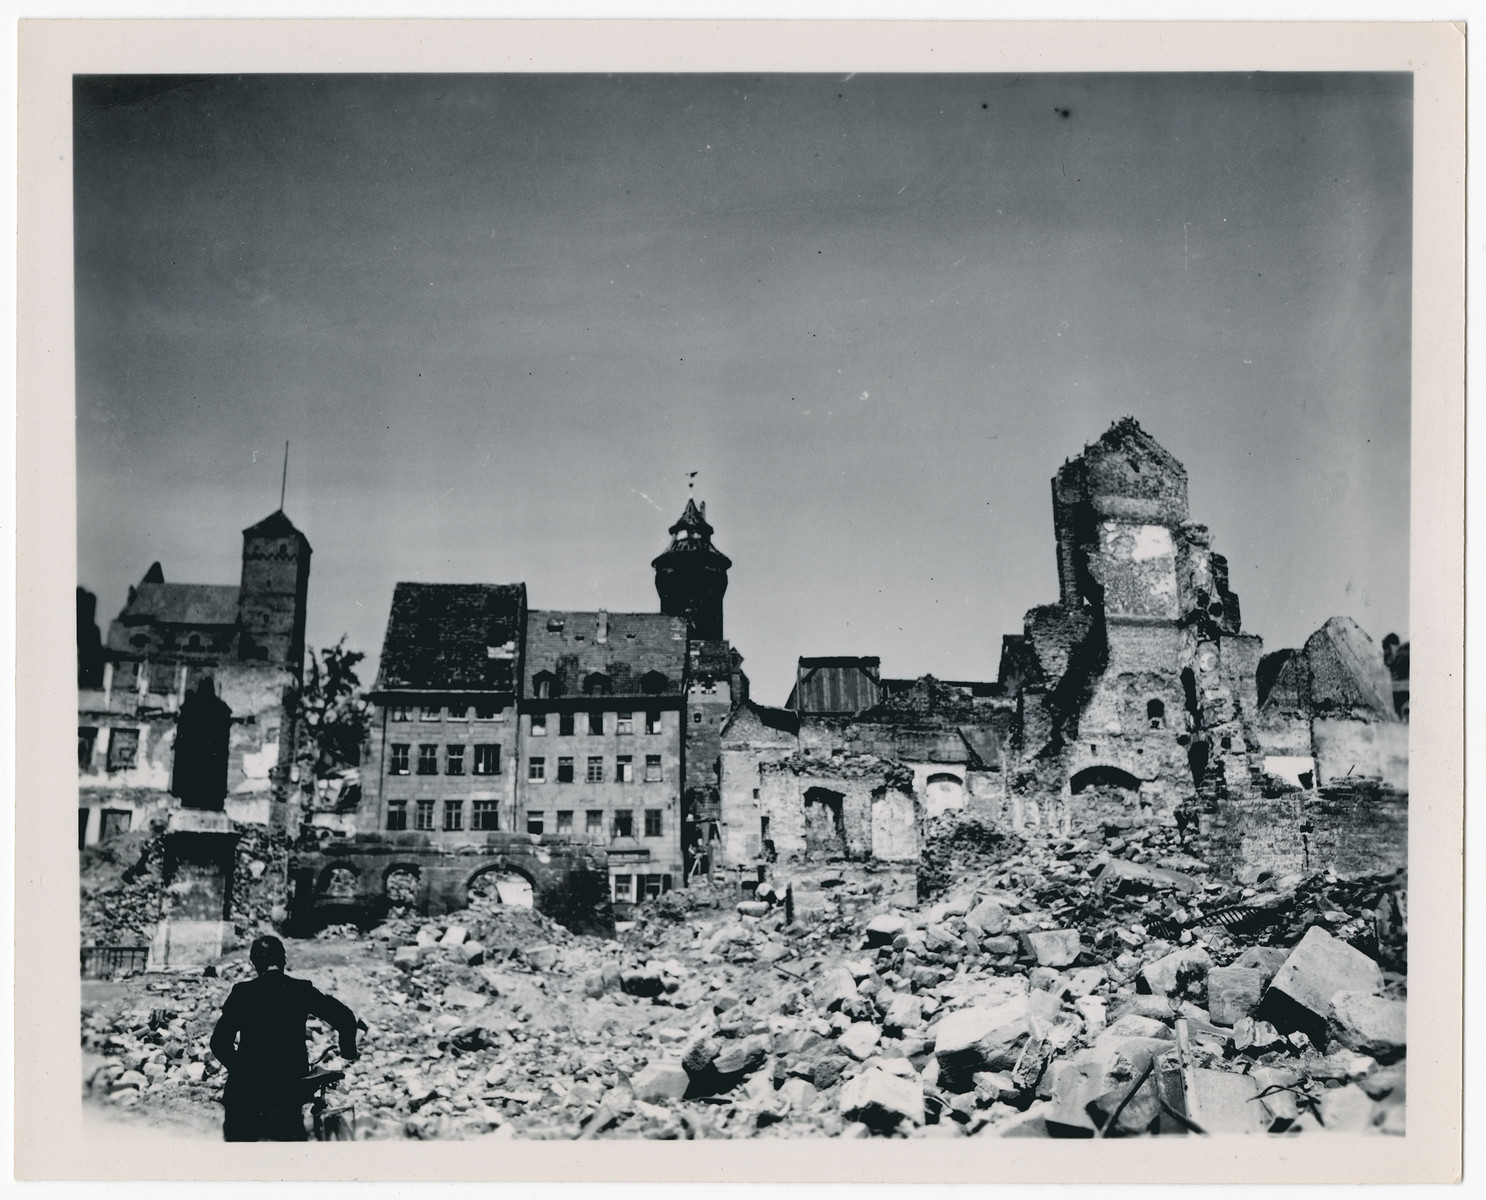 Photogragh of bomb damaged buildings, possibly in Nuremberg, Germany.